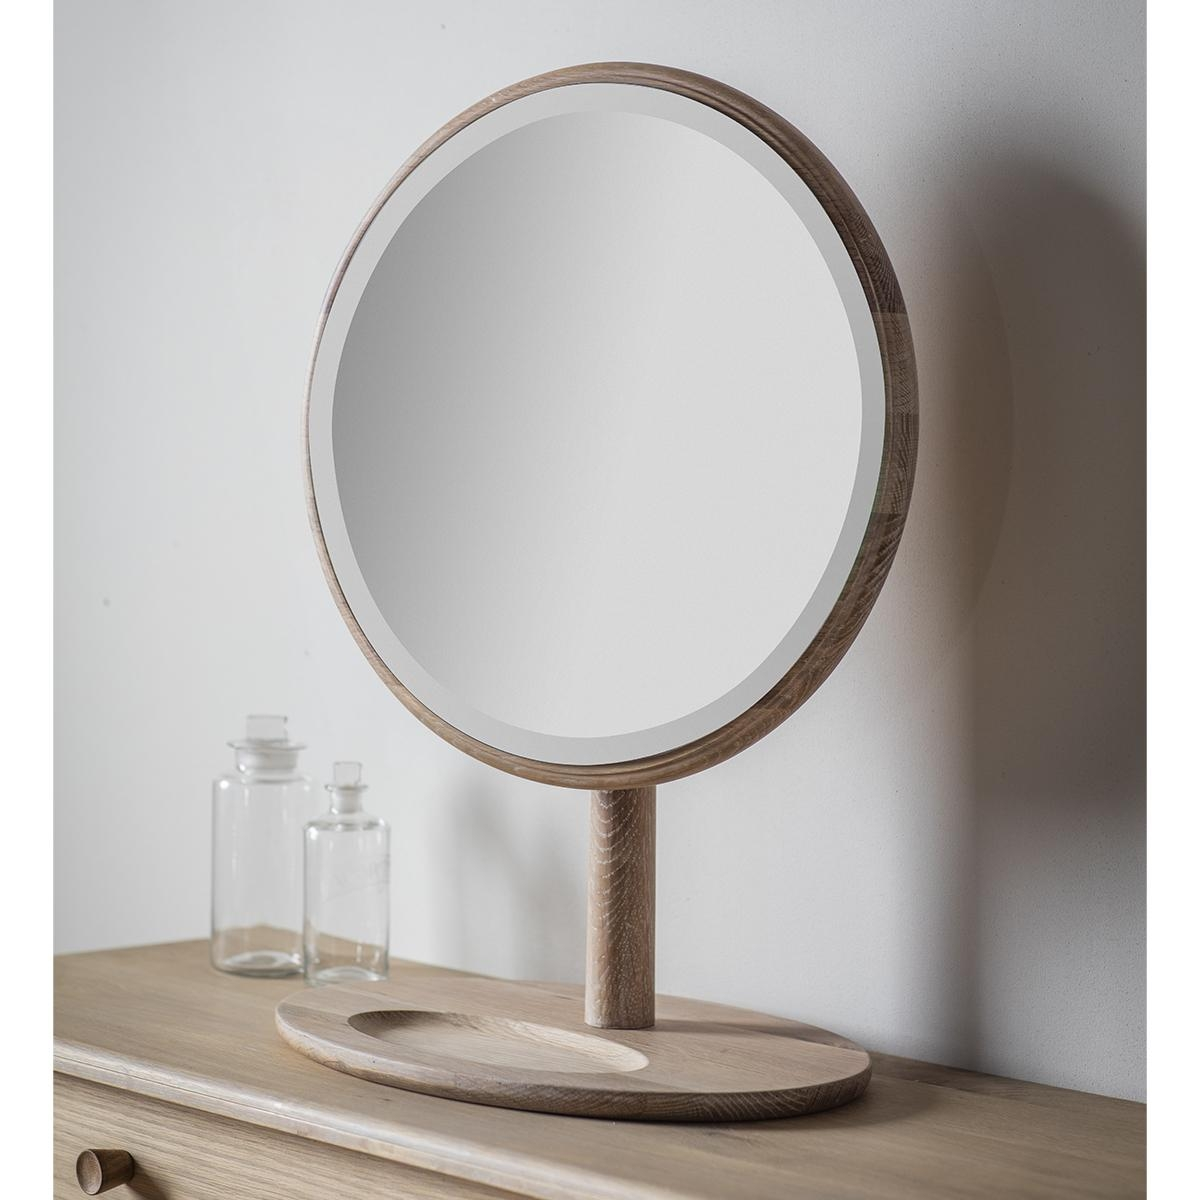 Plain Dressing Table Mirror In Inspiration For Dressing Table Mirrors (Image 10 of 20)